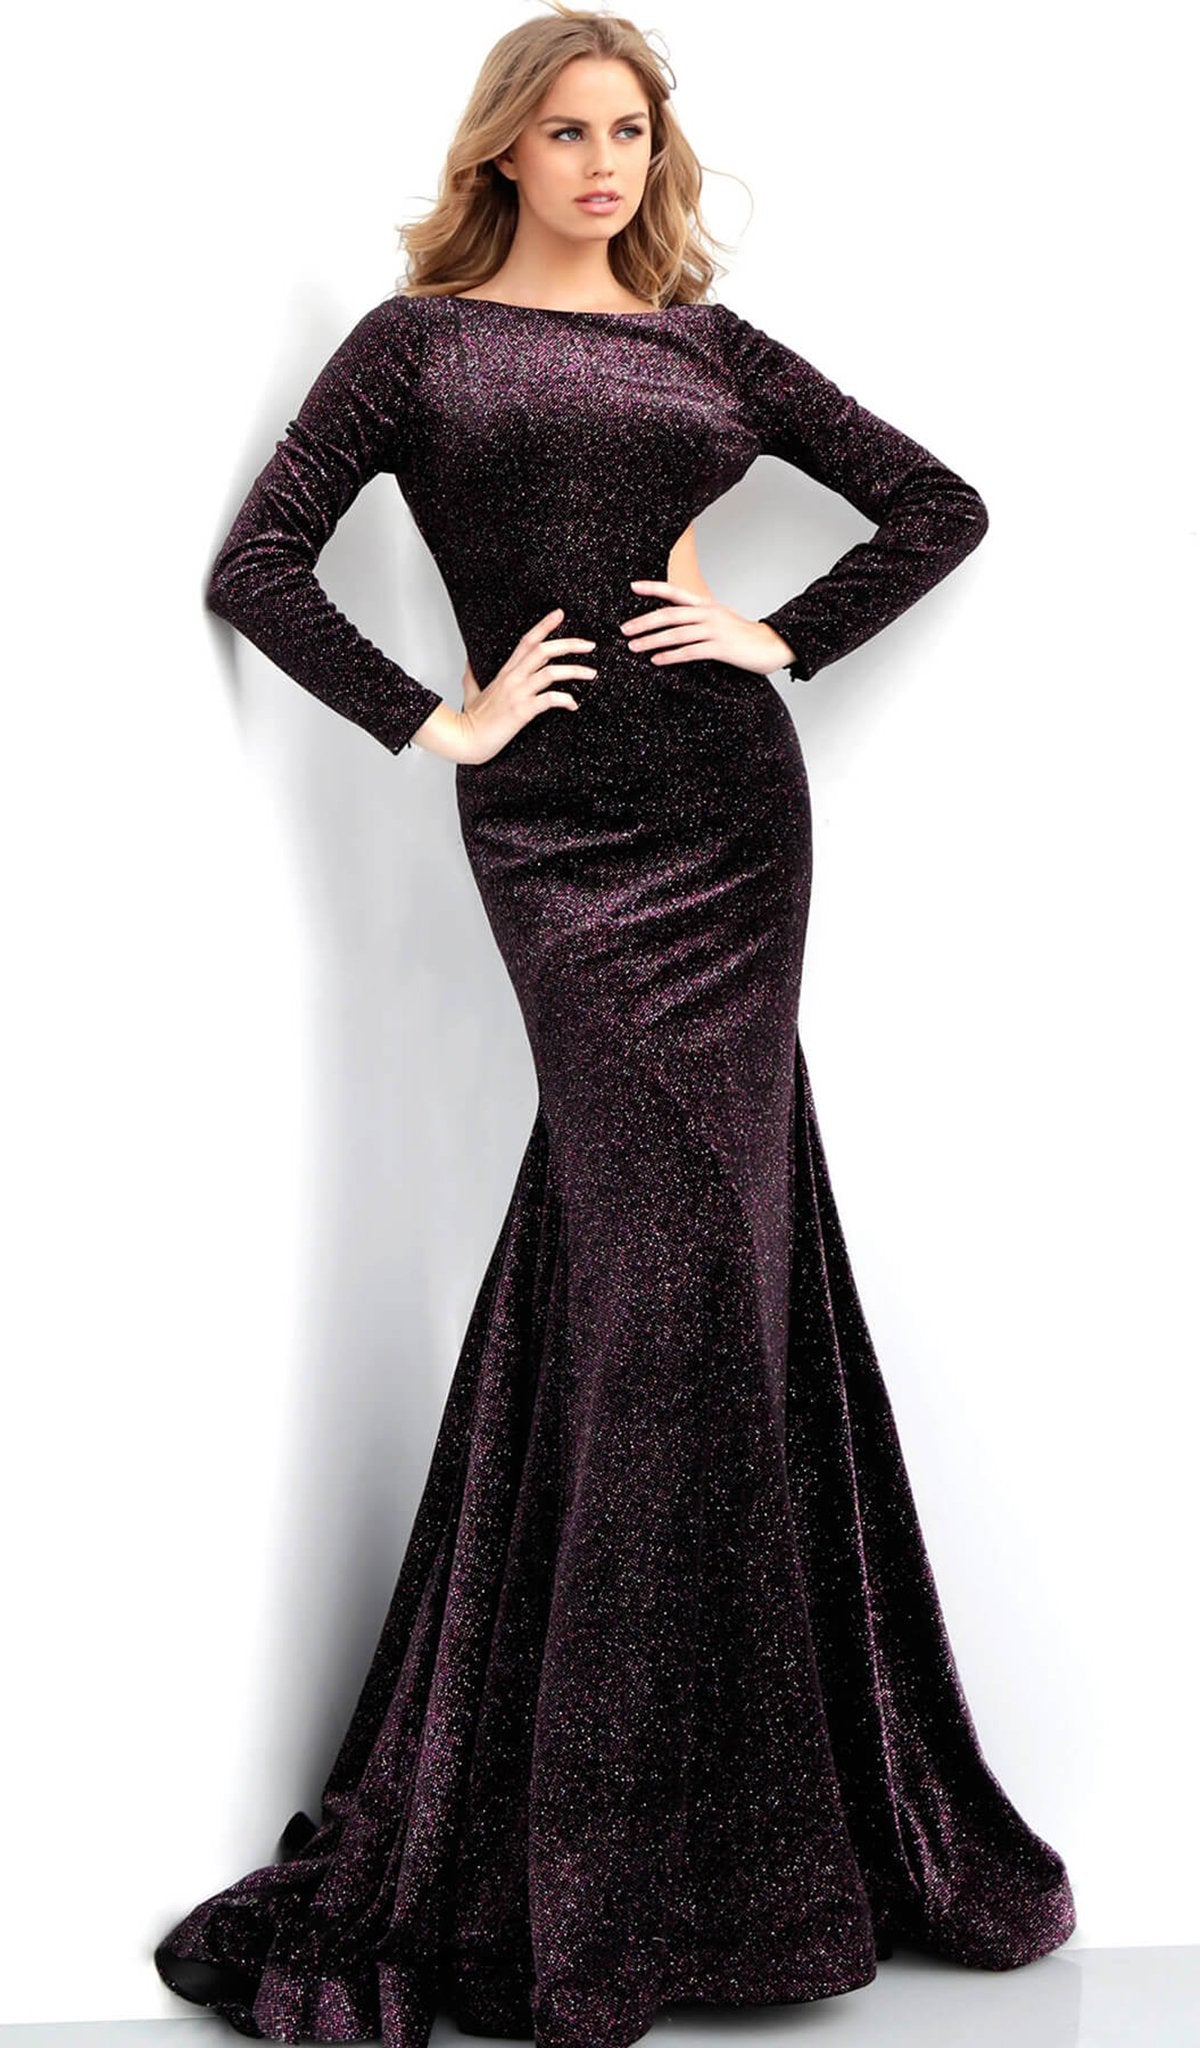 Jovani - 64562 Glittering Long Sleeve Bateau Mermaid Dress In Black and Pink